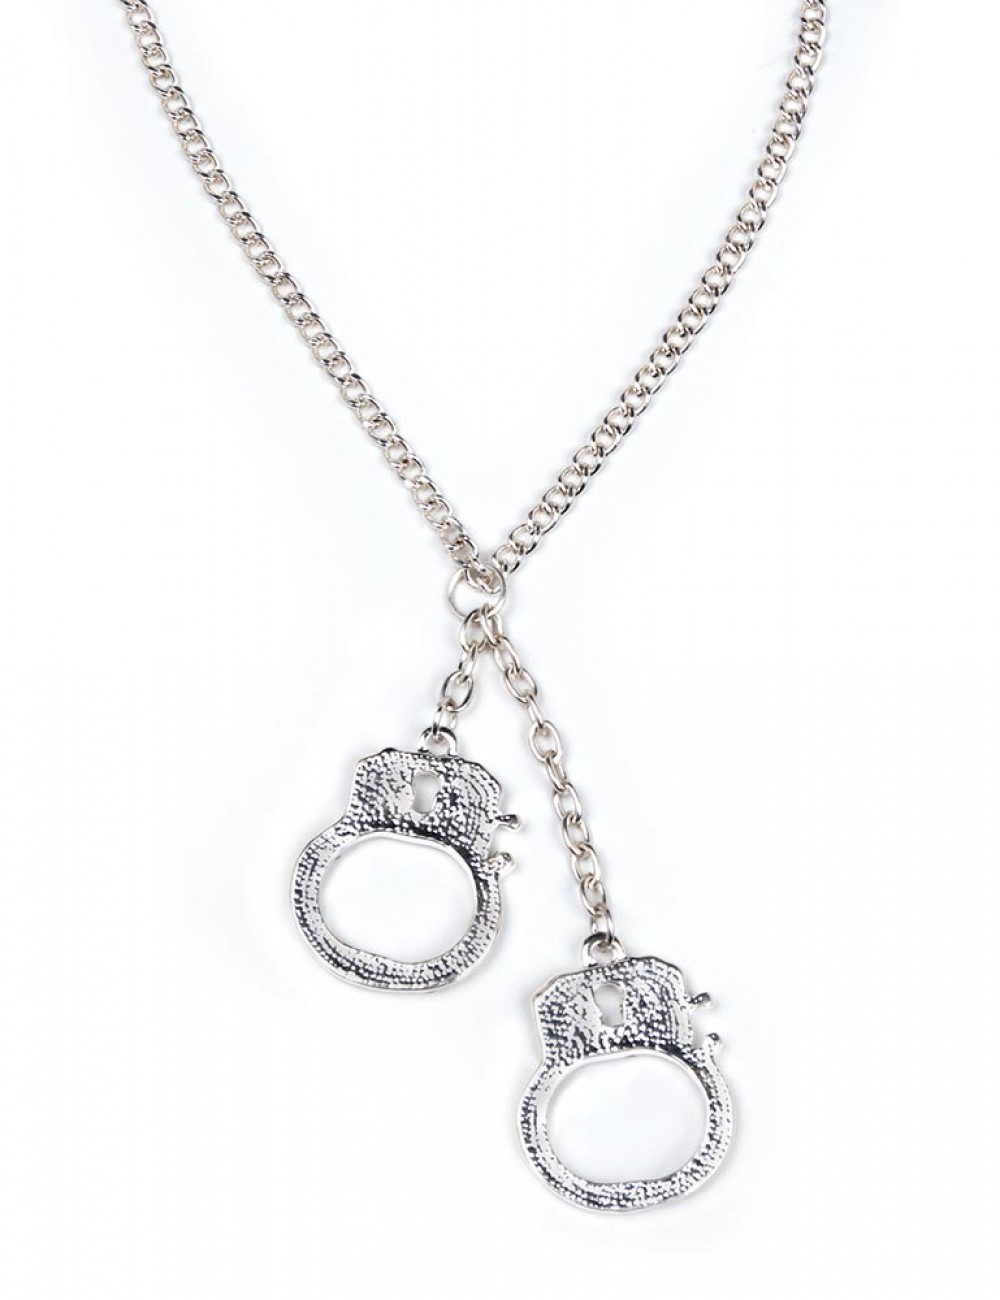 Handcuff Necklace with Rhinestones